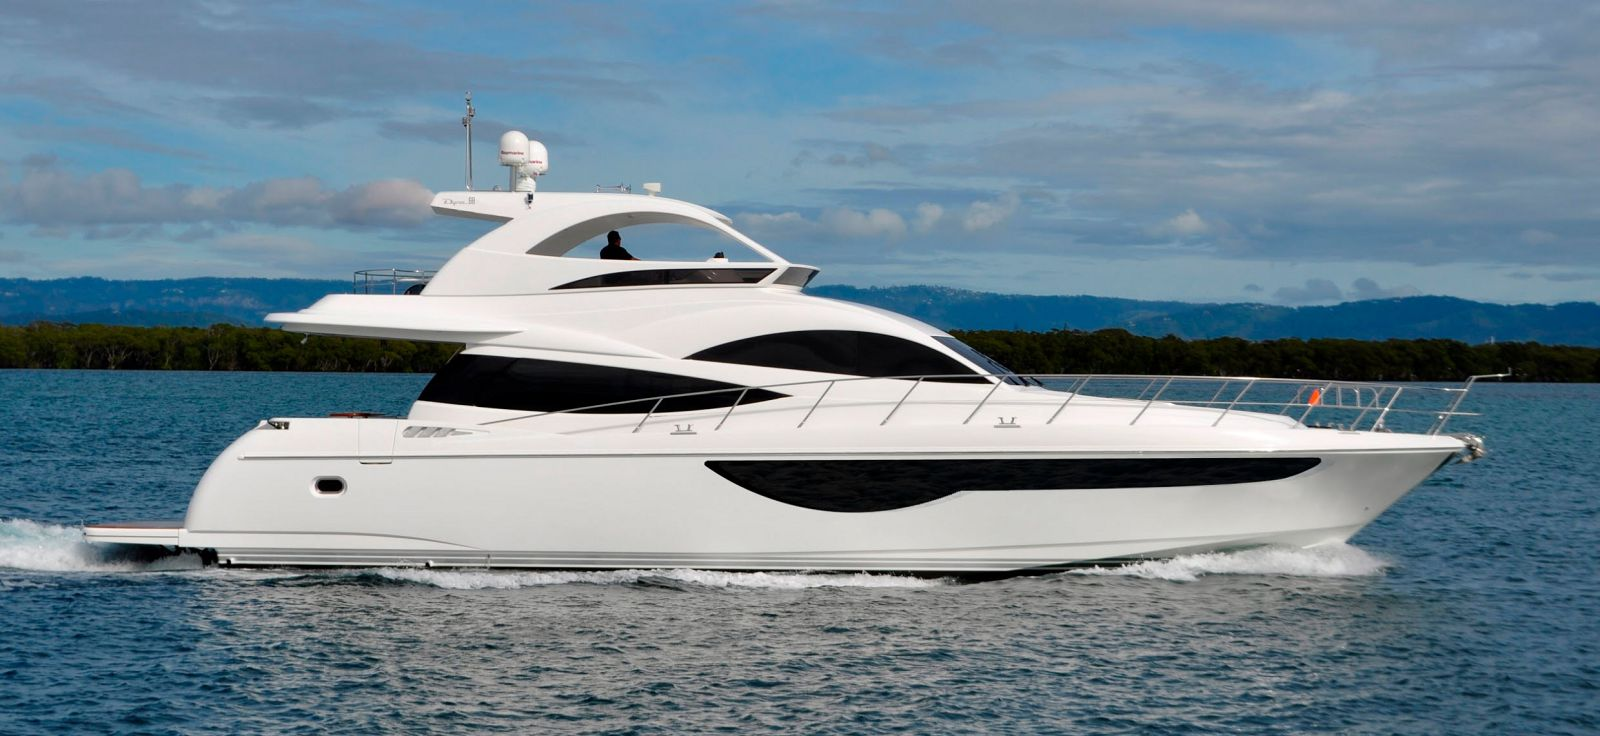 dyna motor yacht for sale in florida